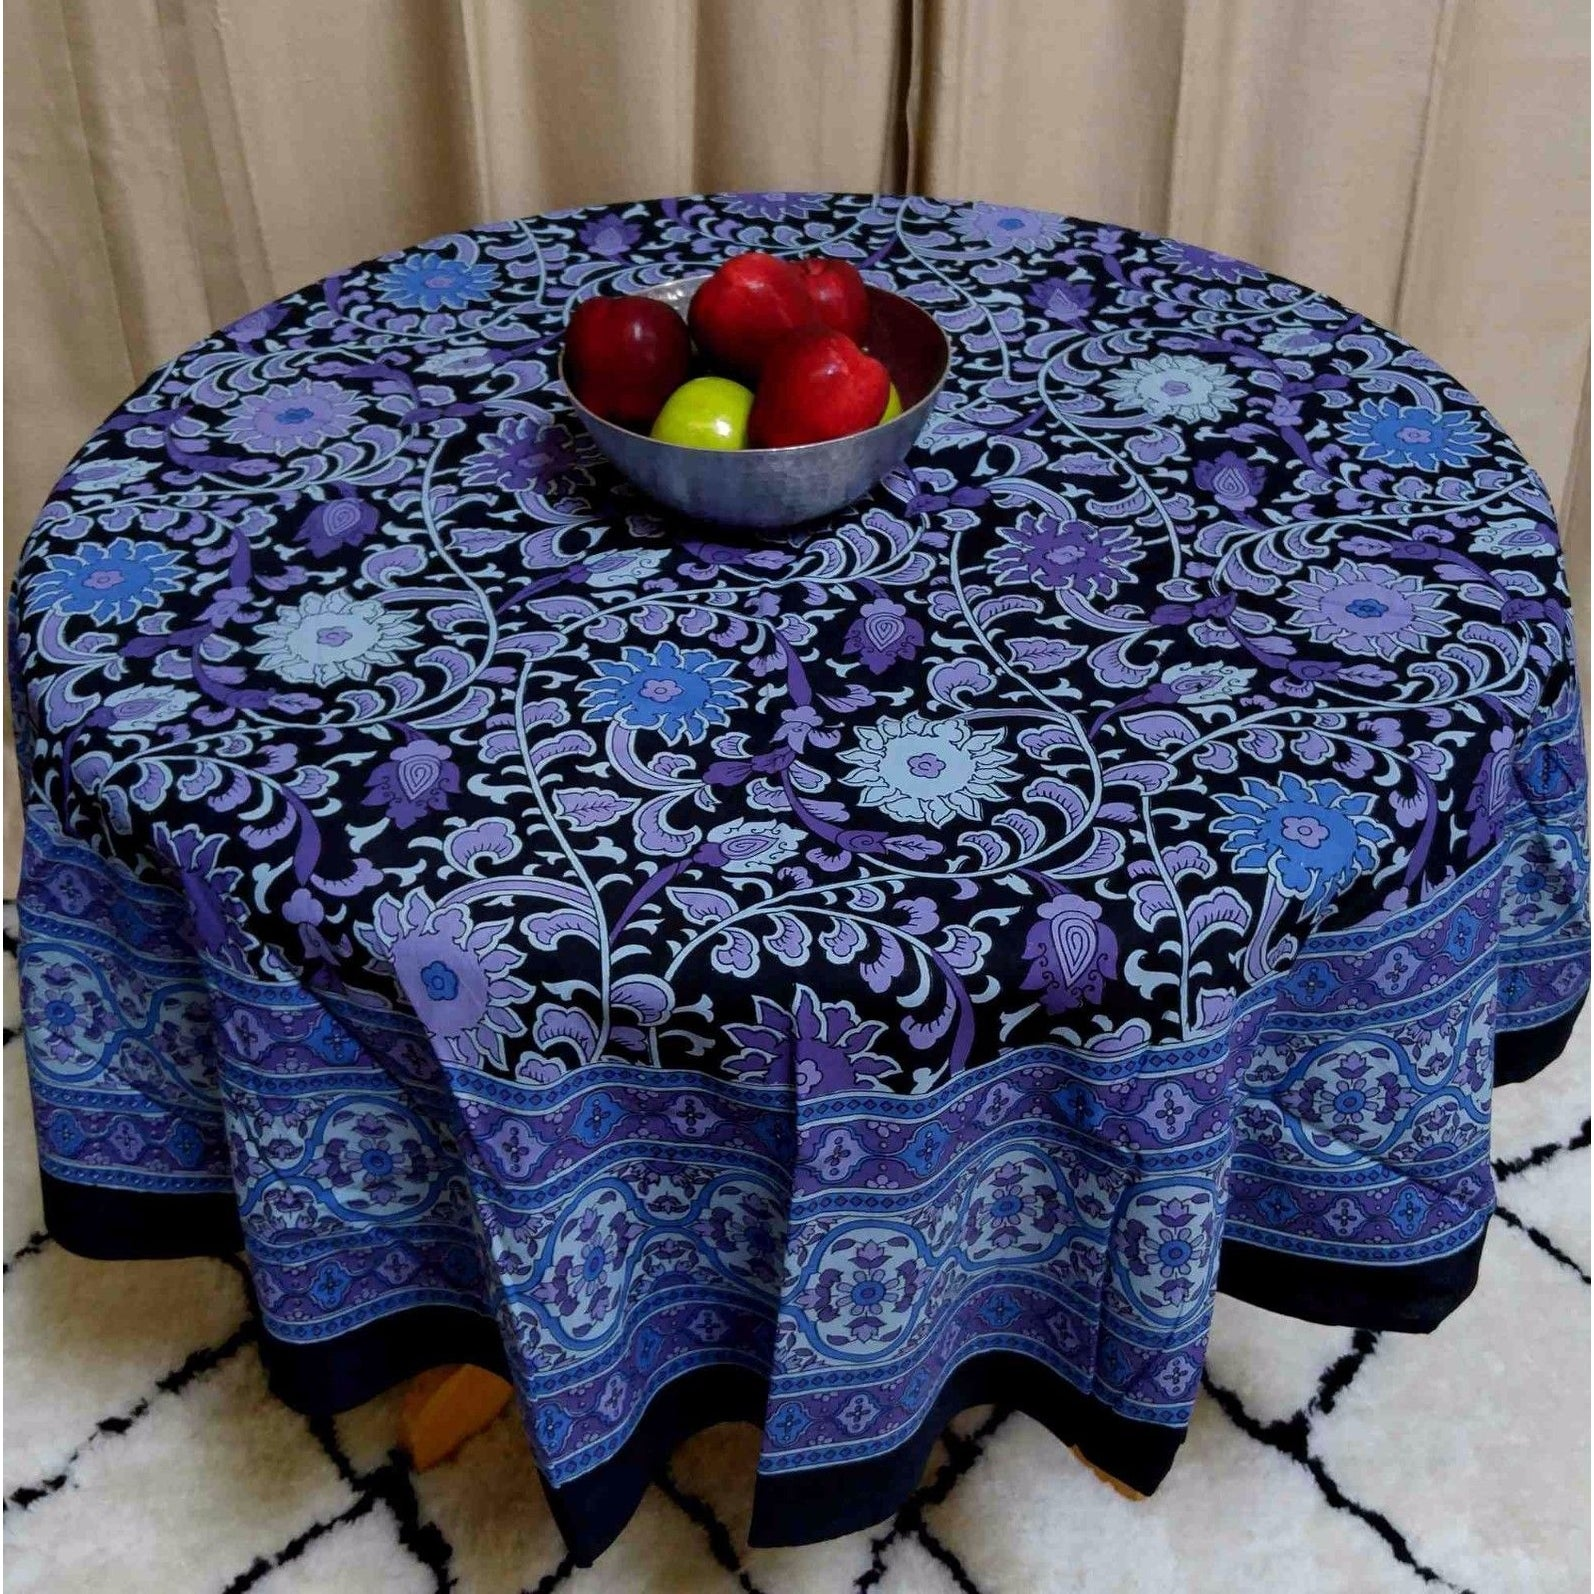 "Handmade Sunflower Print 100% Cotton Tablecloth 60""x60"" Square & 66"" Round in Two shades - Yellow Black & Blue Black - Thumbnail 5"